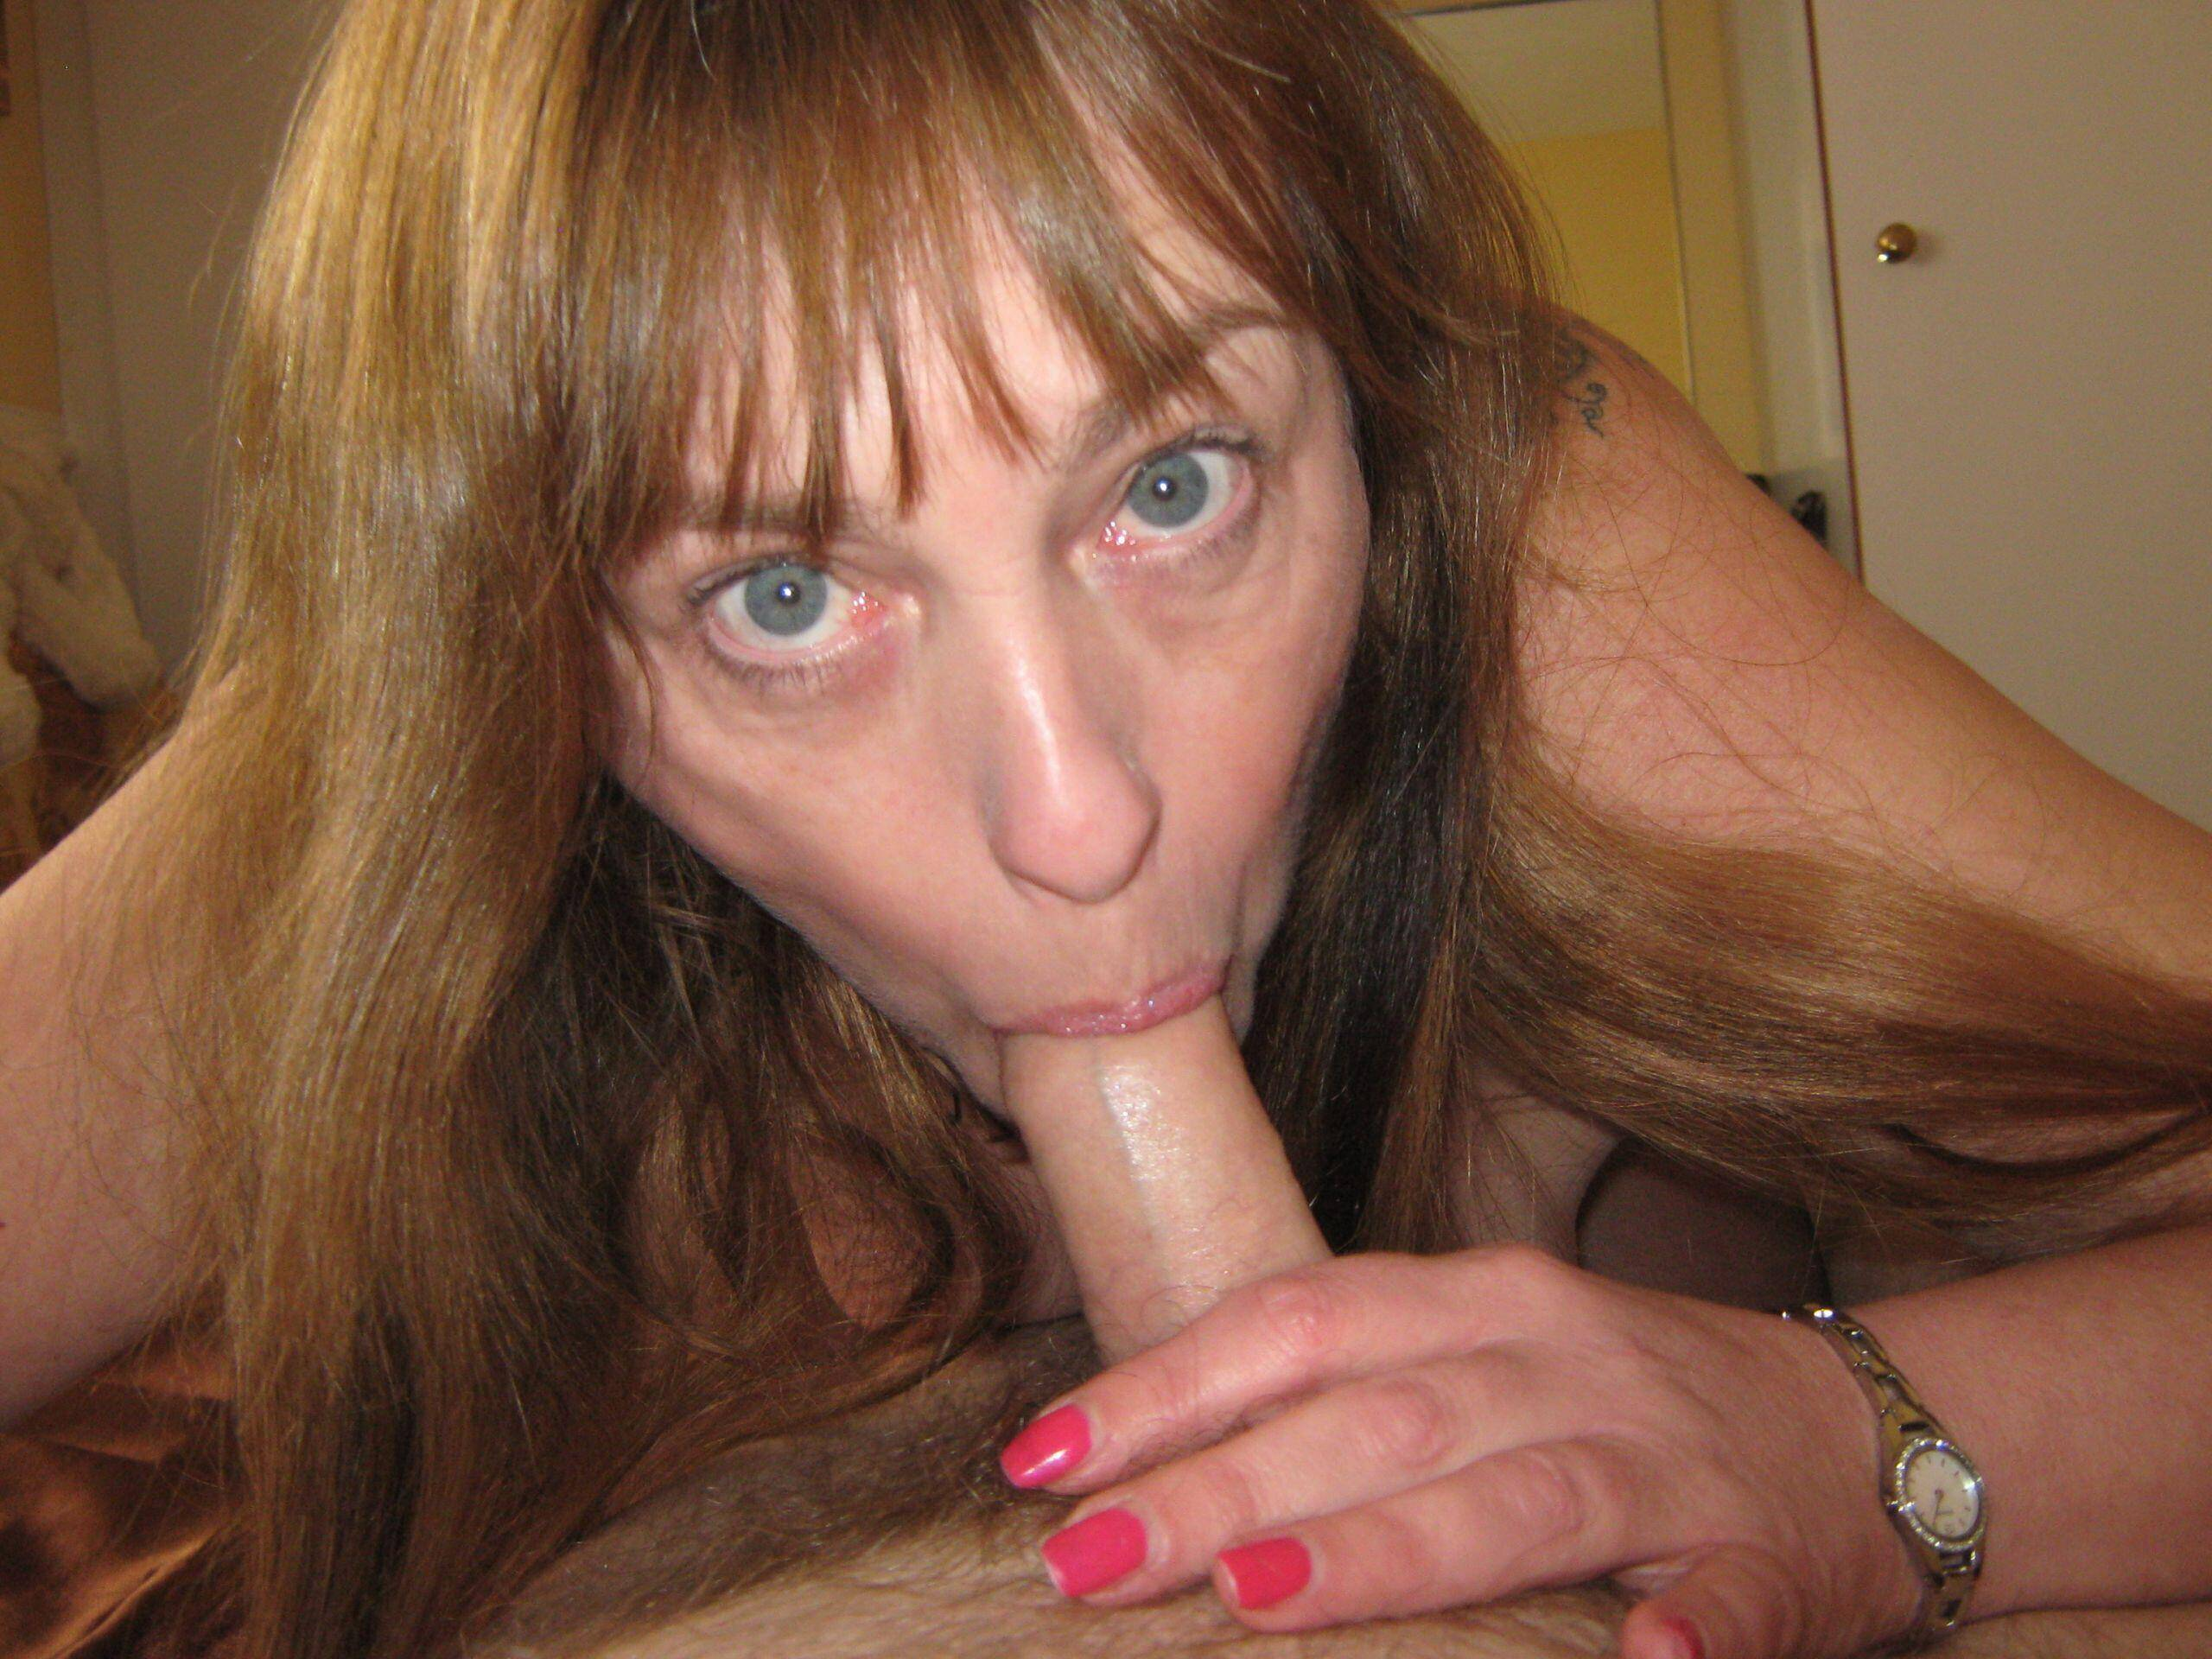 Old whore with cock. real nudity